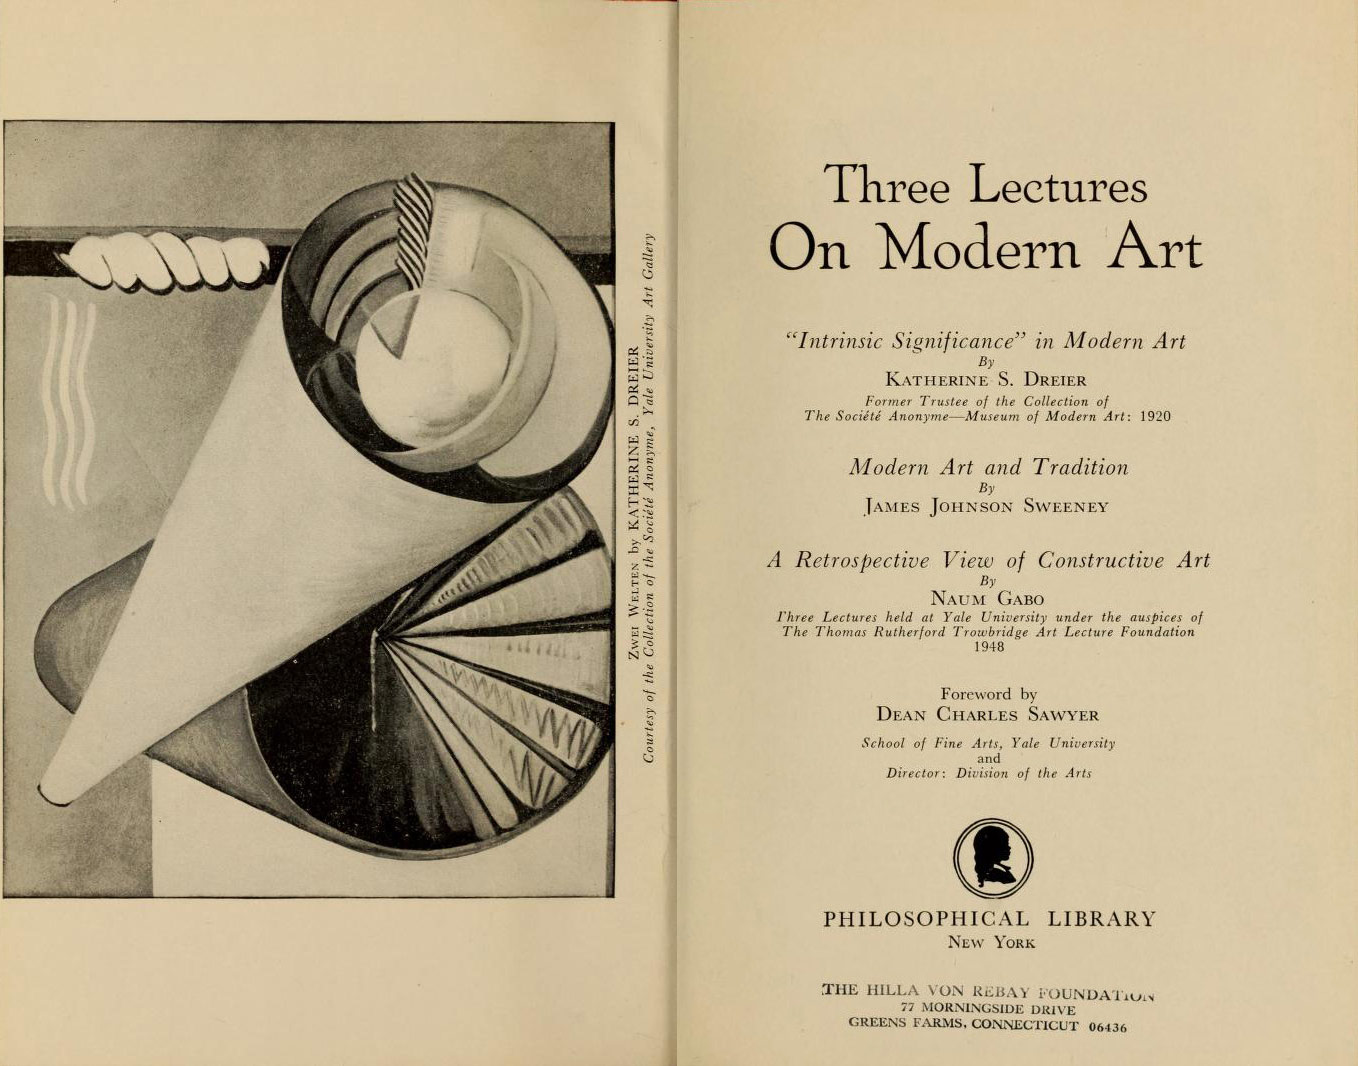 d92ea0555cac7 The title page of the publication Three Lectures on Modern Art  (Philosophical Library